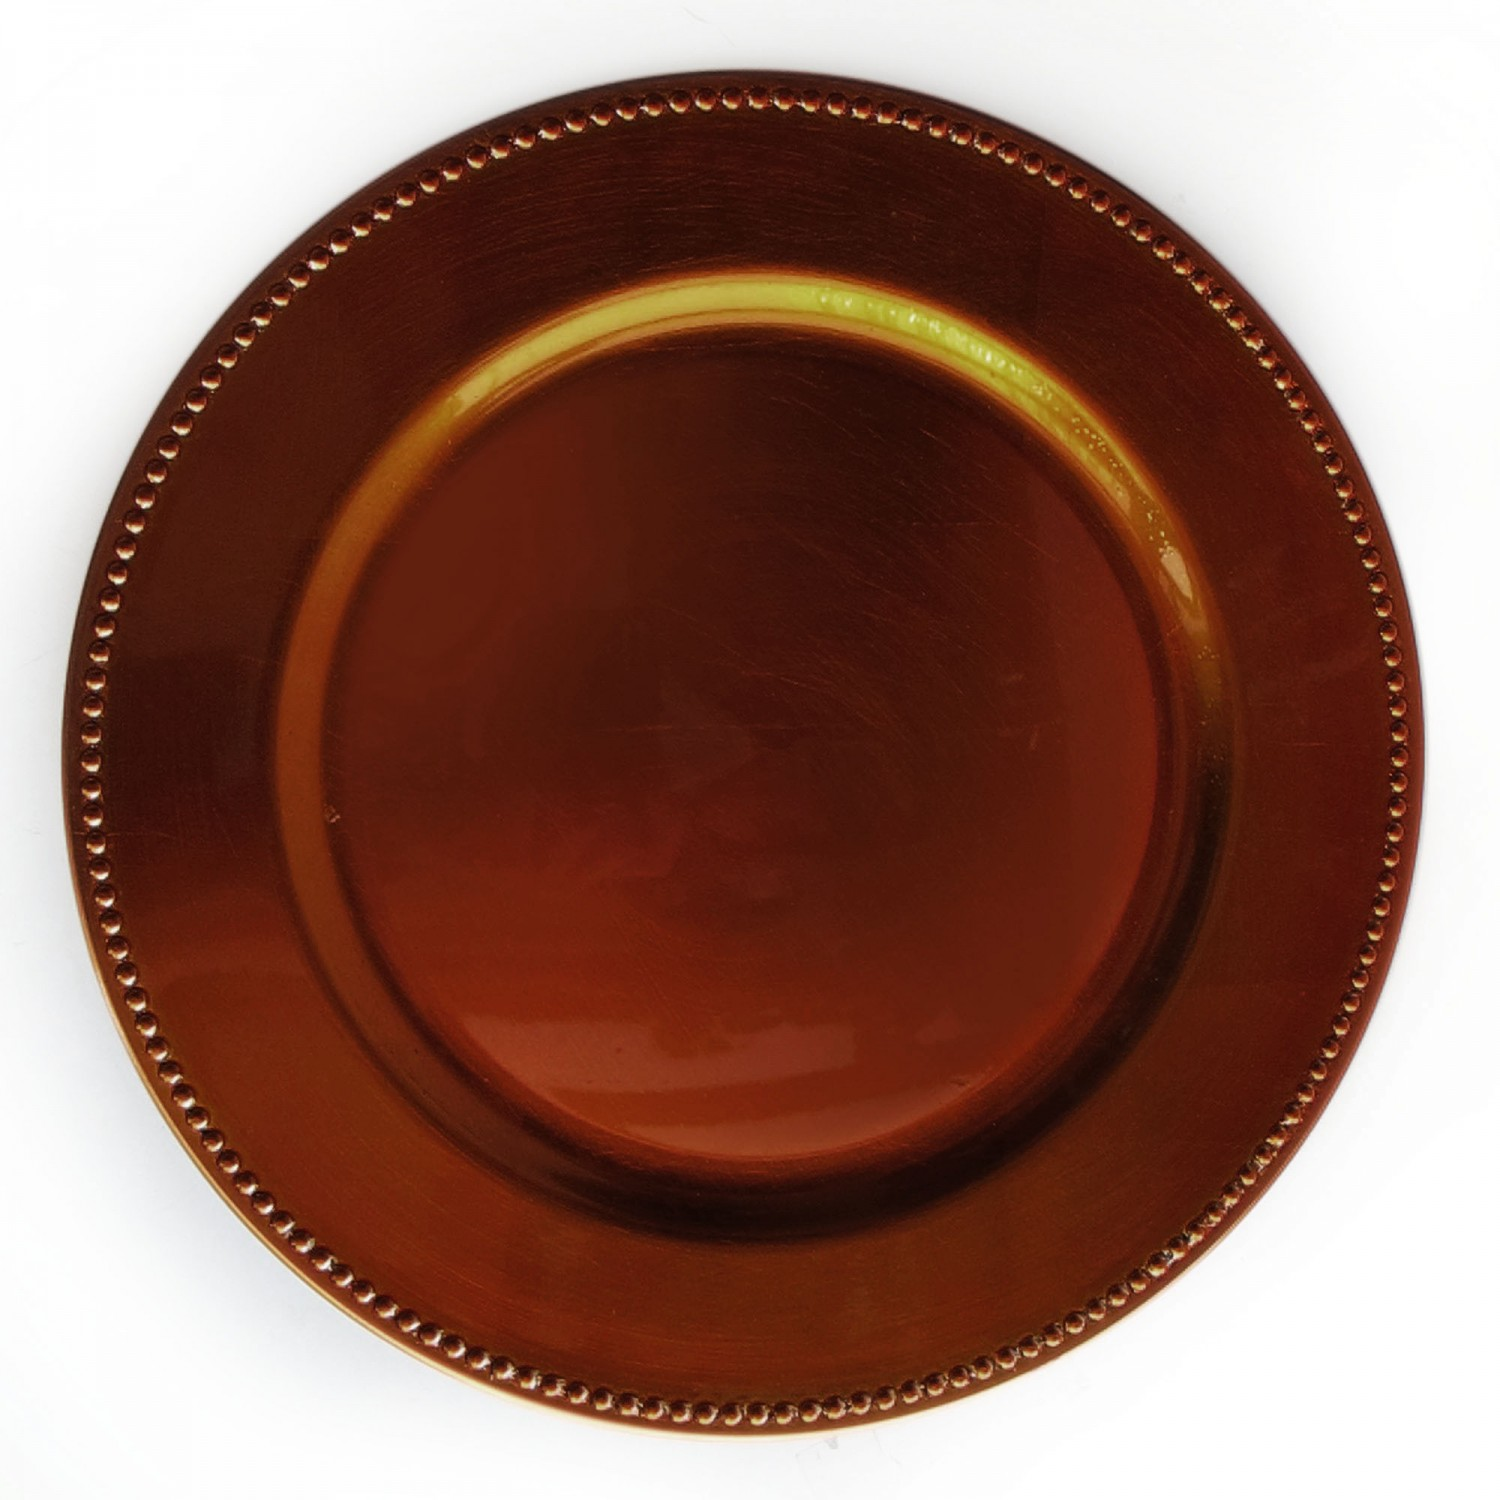 The Jay Companies 1270172 Round Copper Beaded Charger Plate 13""